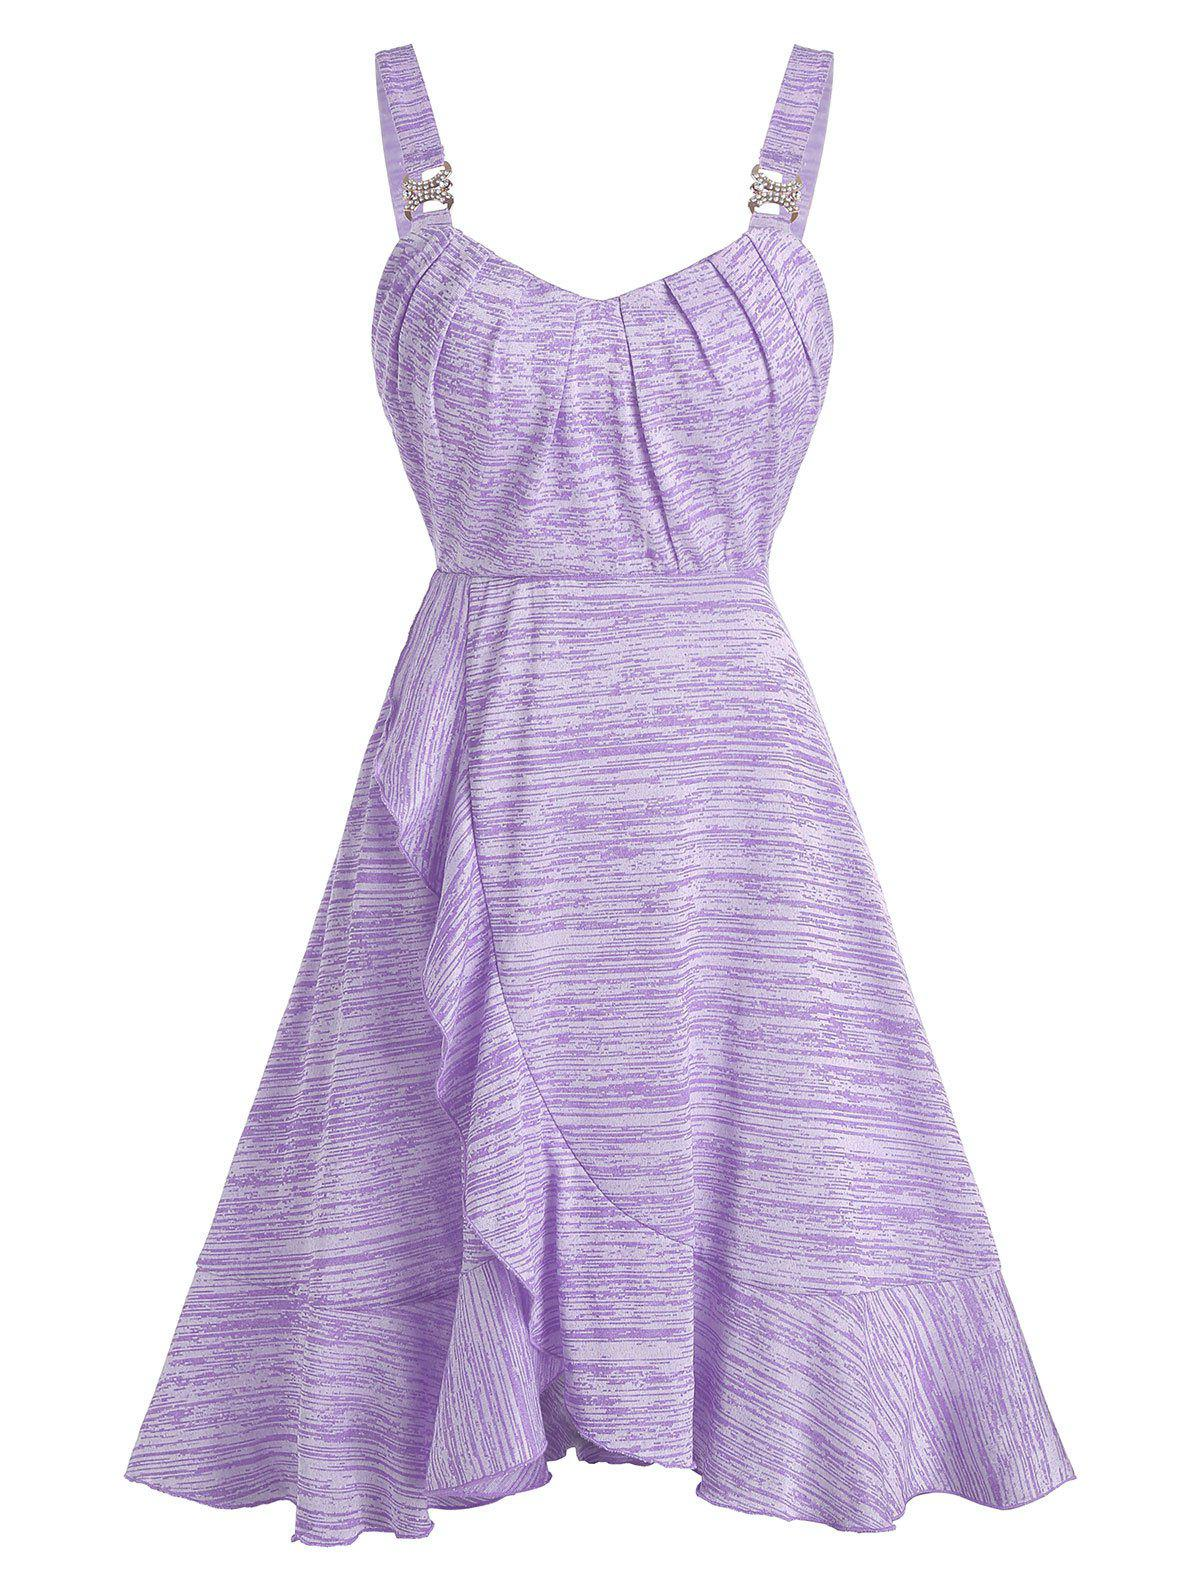 Space Dye Buckled Ruffled Mini Cami Dress - MAUVE 3XL